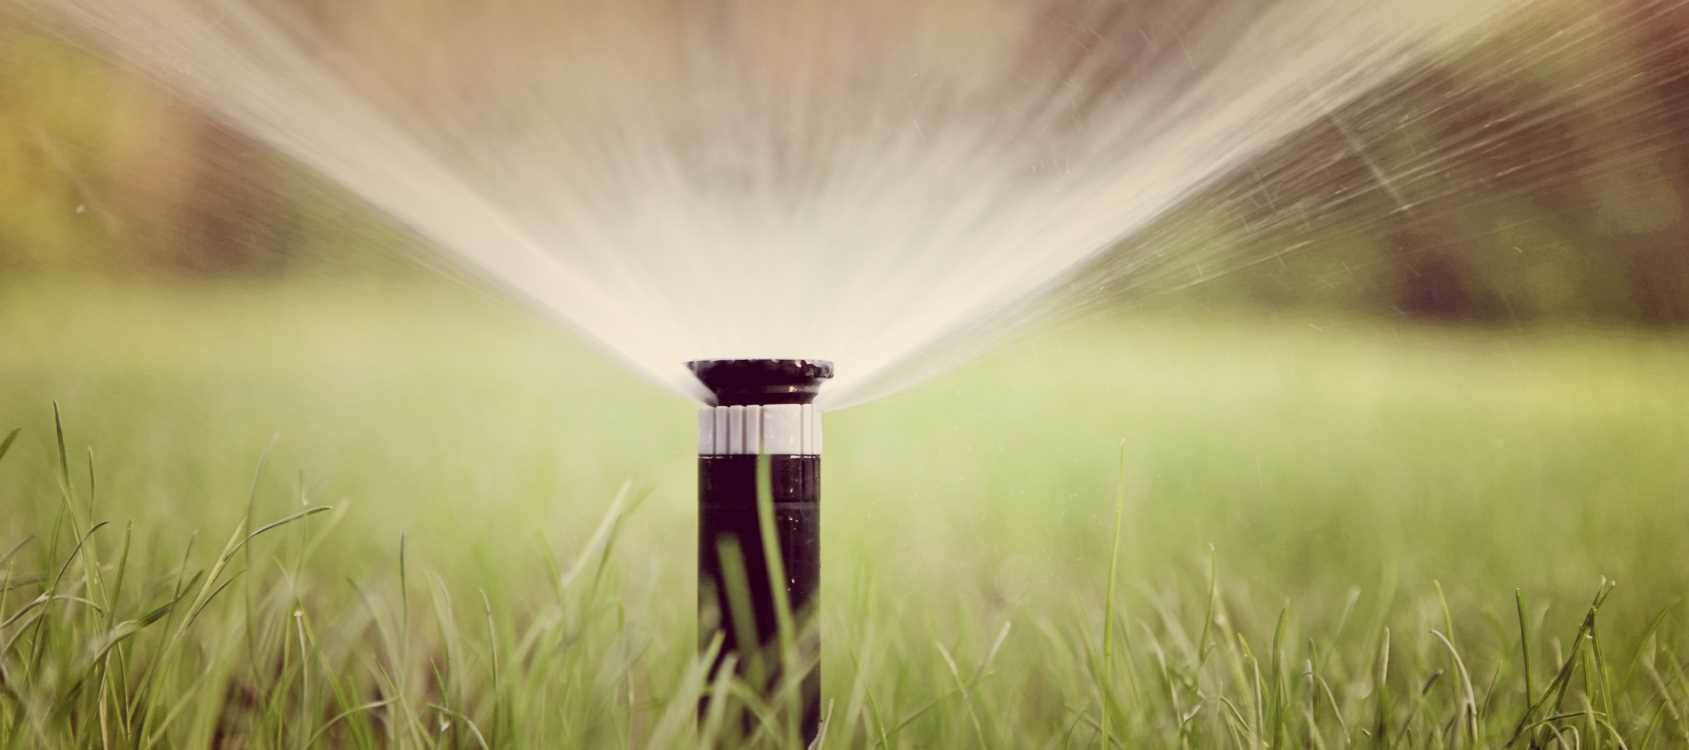 Proper Techniques for Lawn Irrigation - Springfield MO